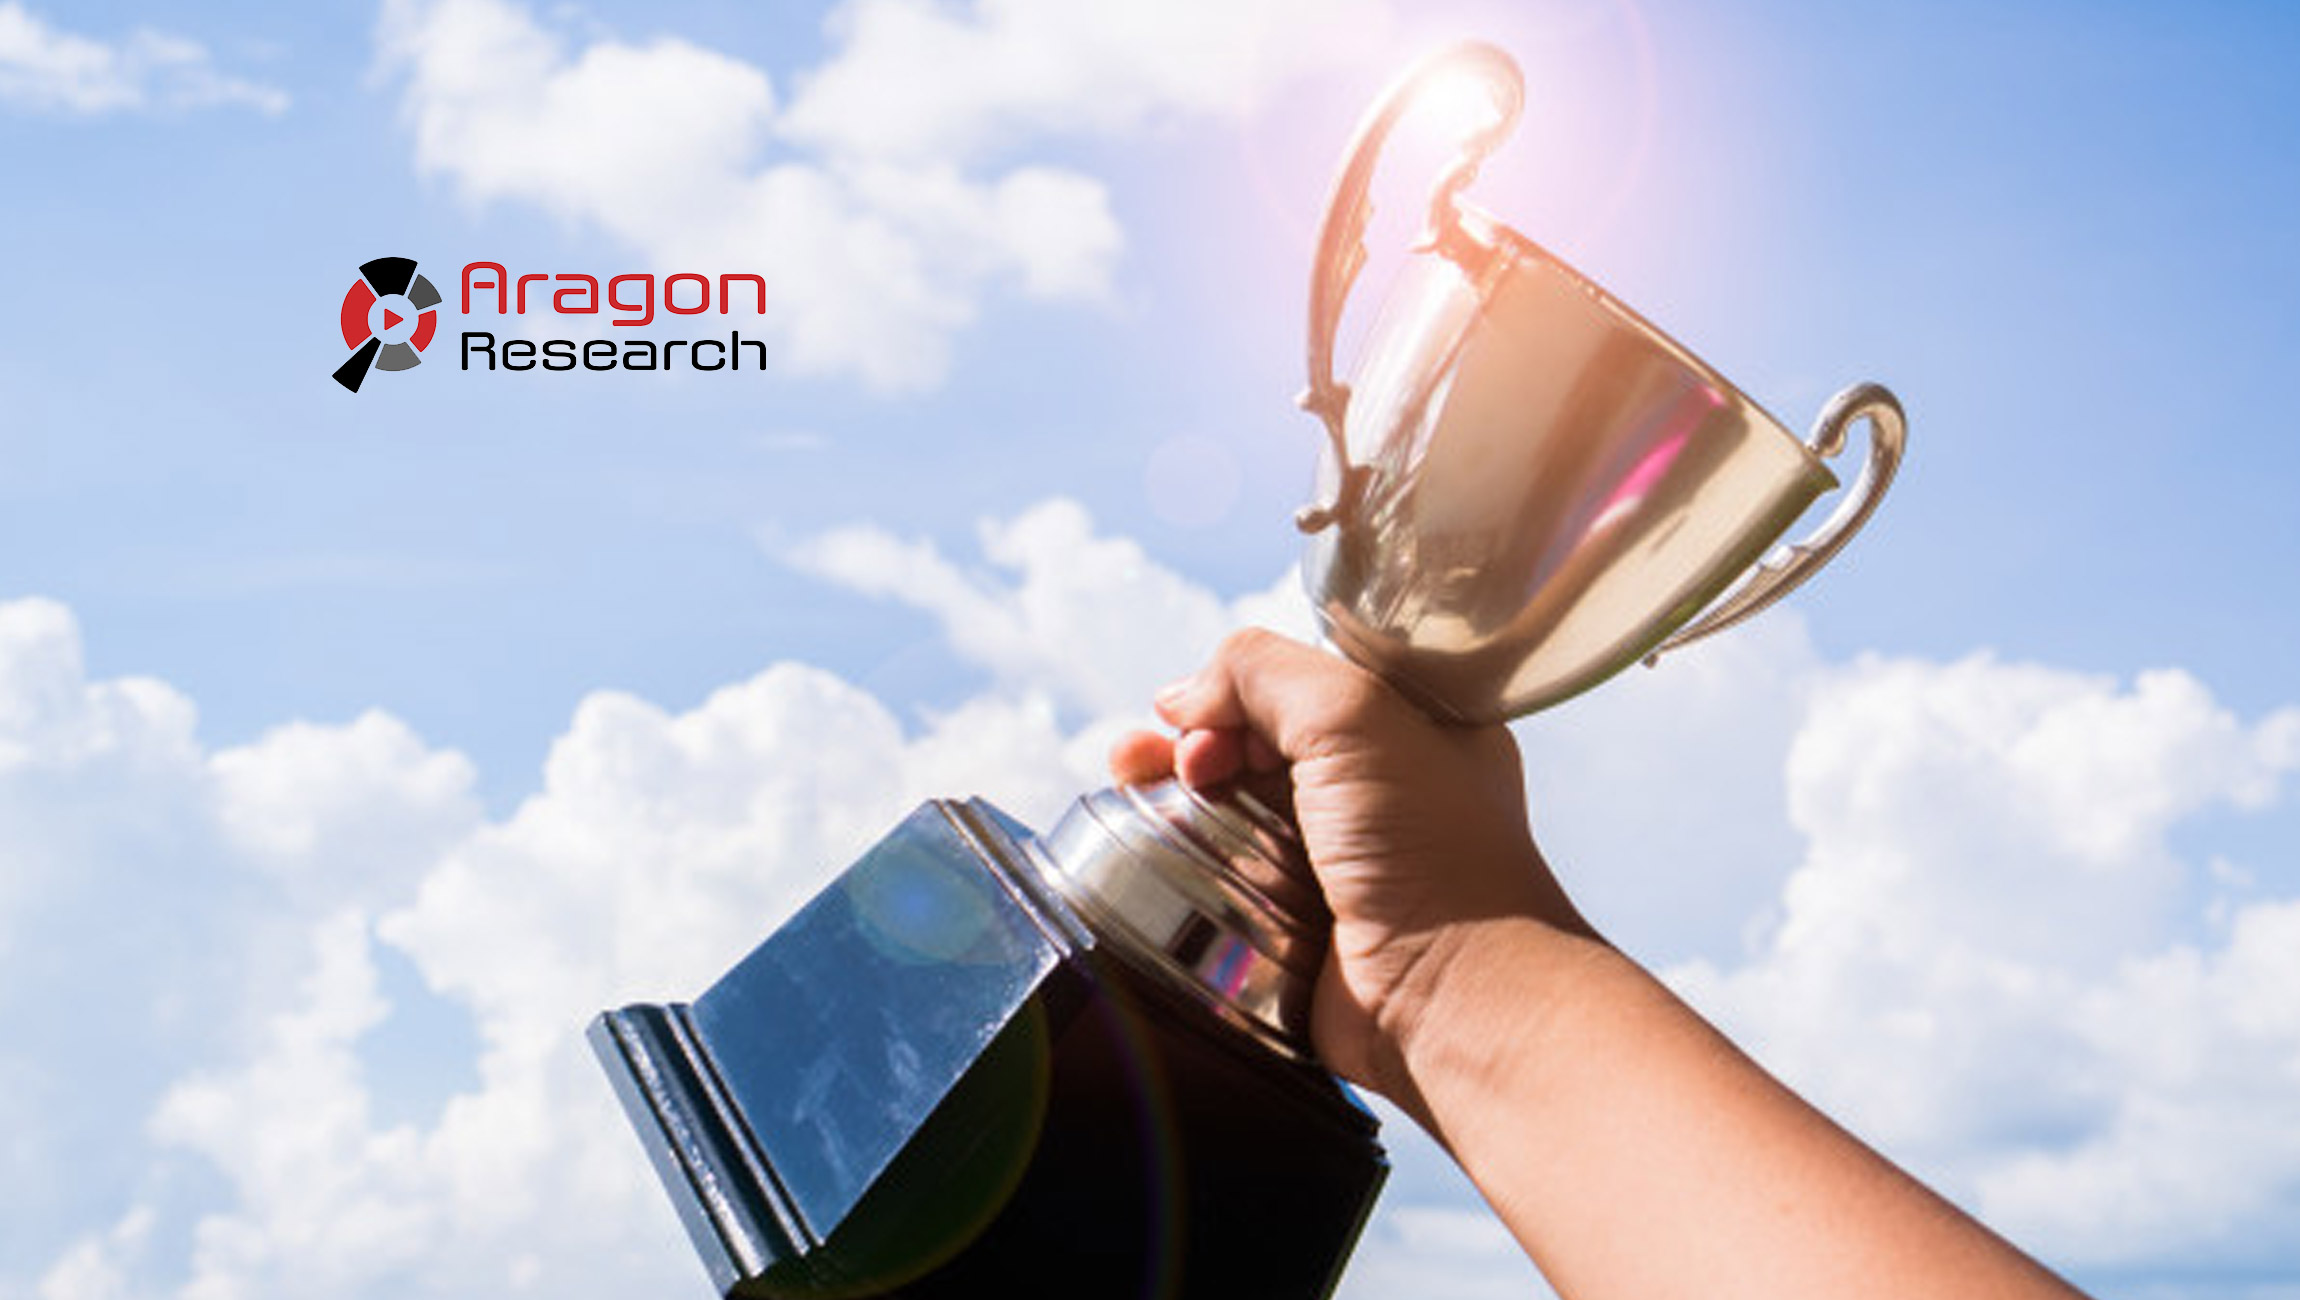 Aragon Research Recognizes Innovation and Women in Technology Award Winners at Aragon Transform 19